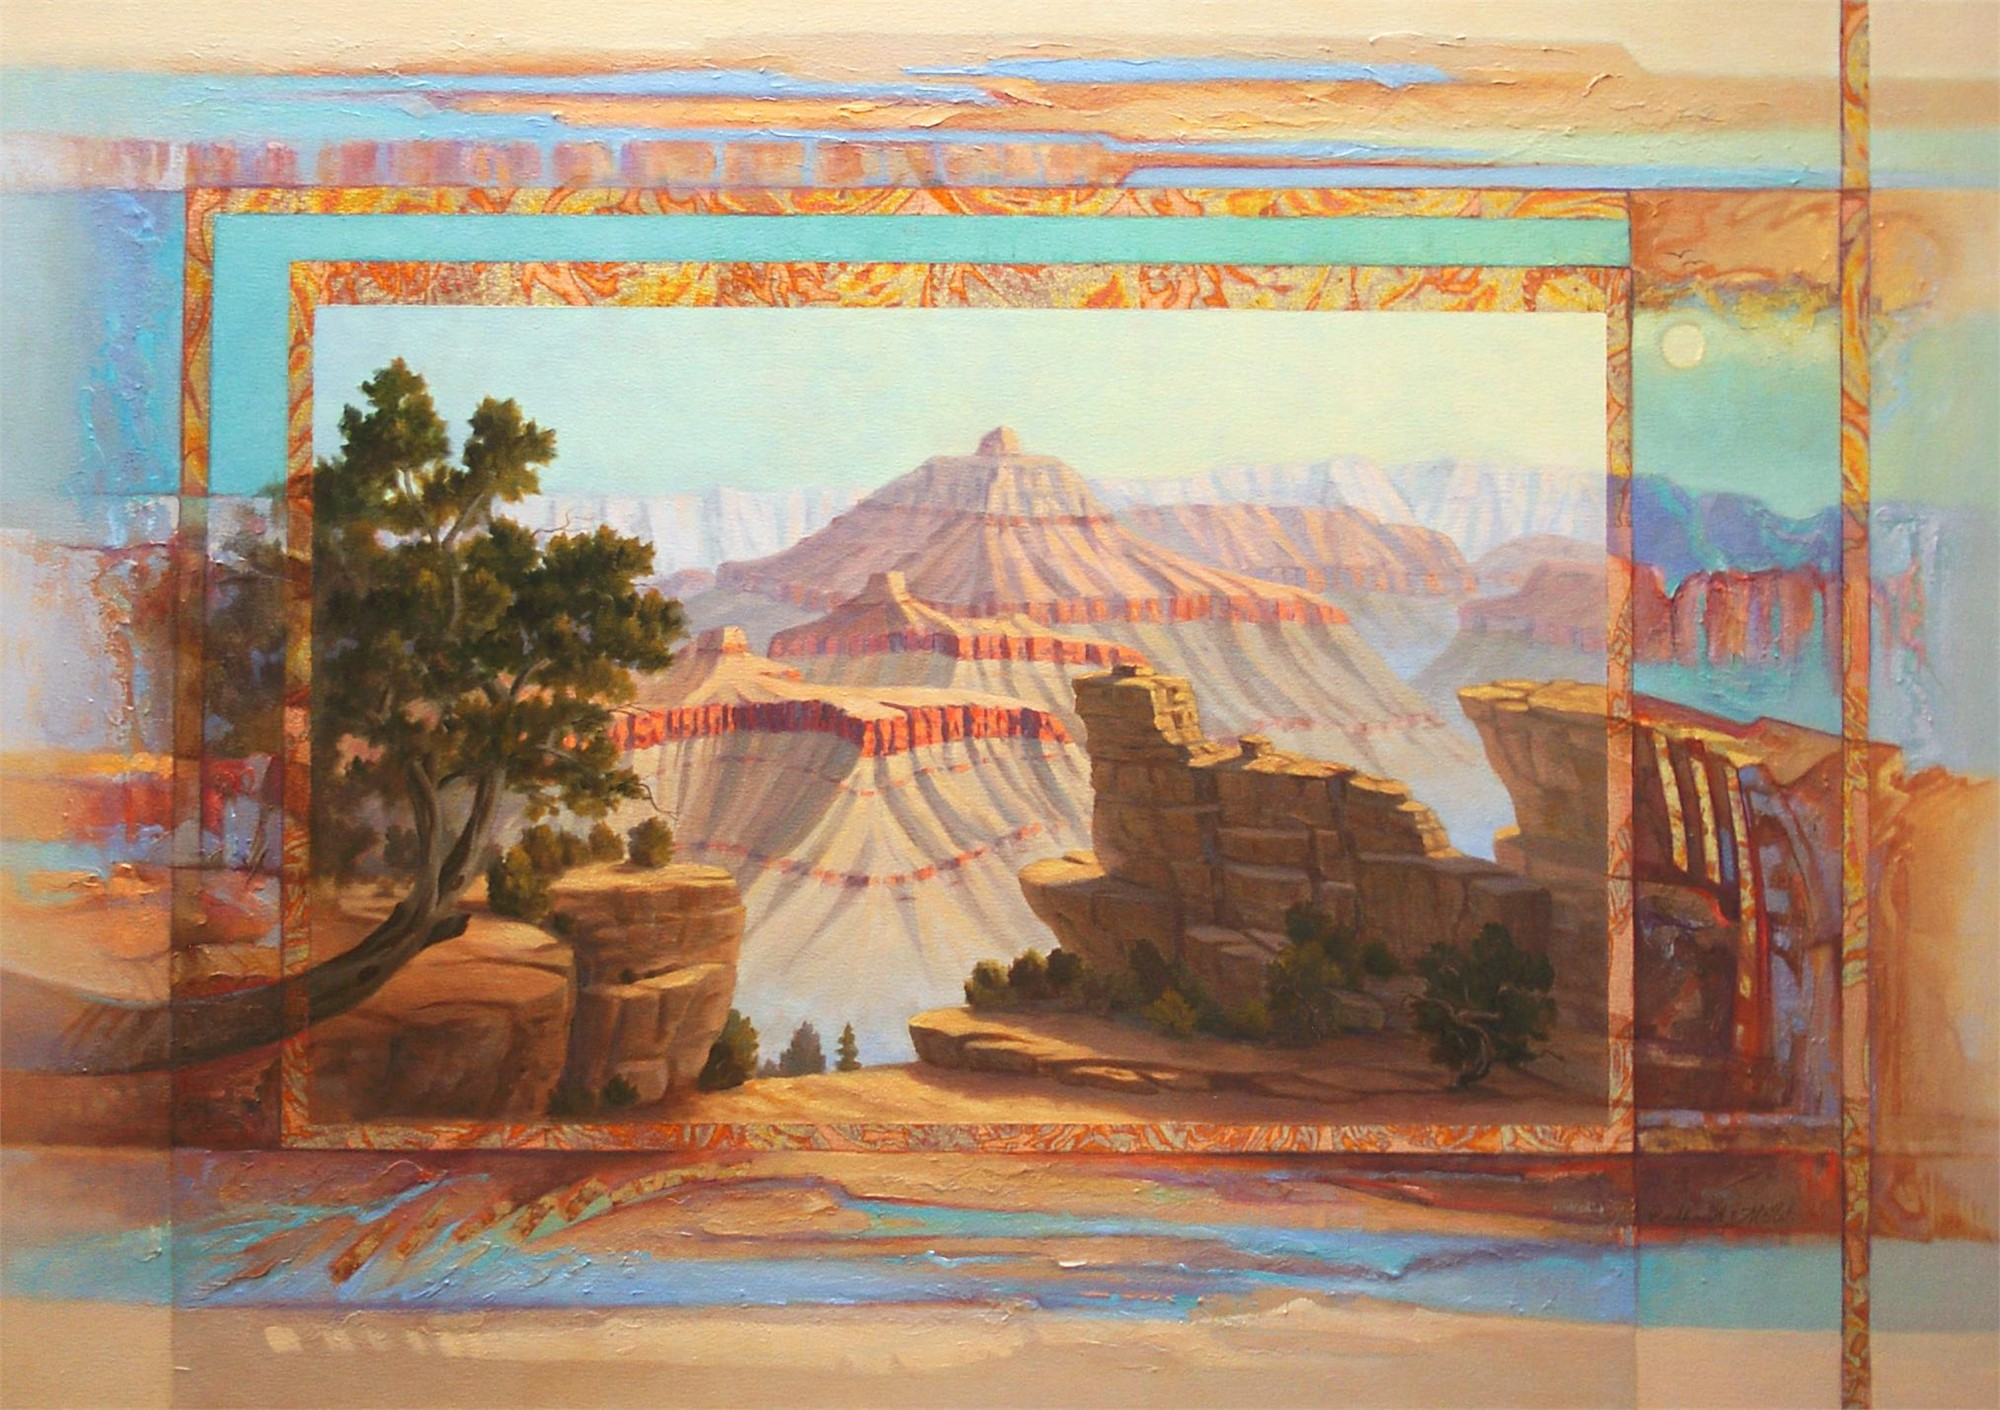 Morning Gentle Light (Grand Canyon) by Marlys Mallét & Michael Redhawk